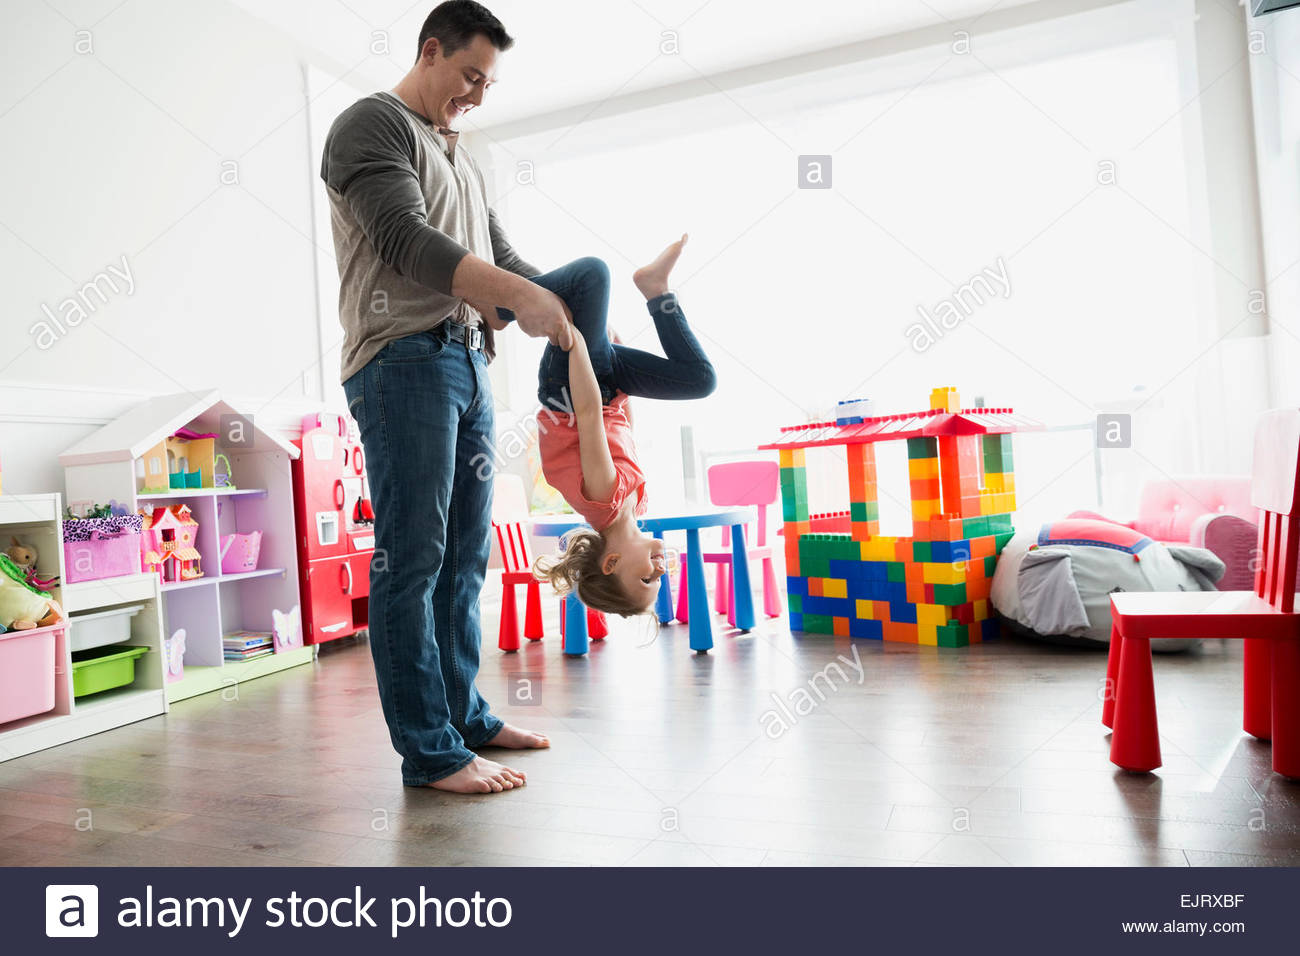 Father flipping daughter upside-down - Stock Image